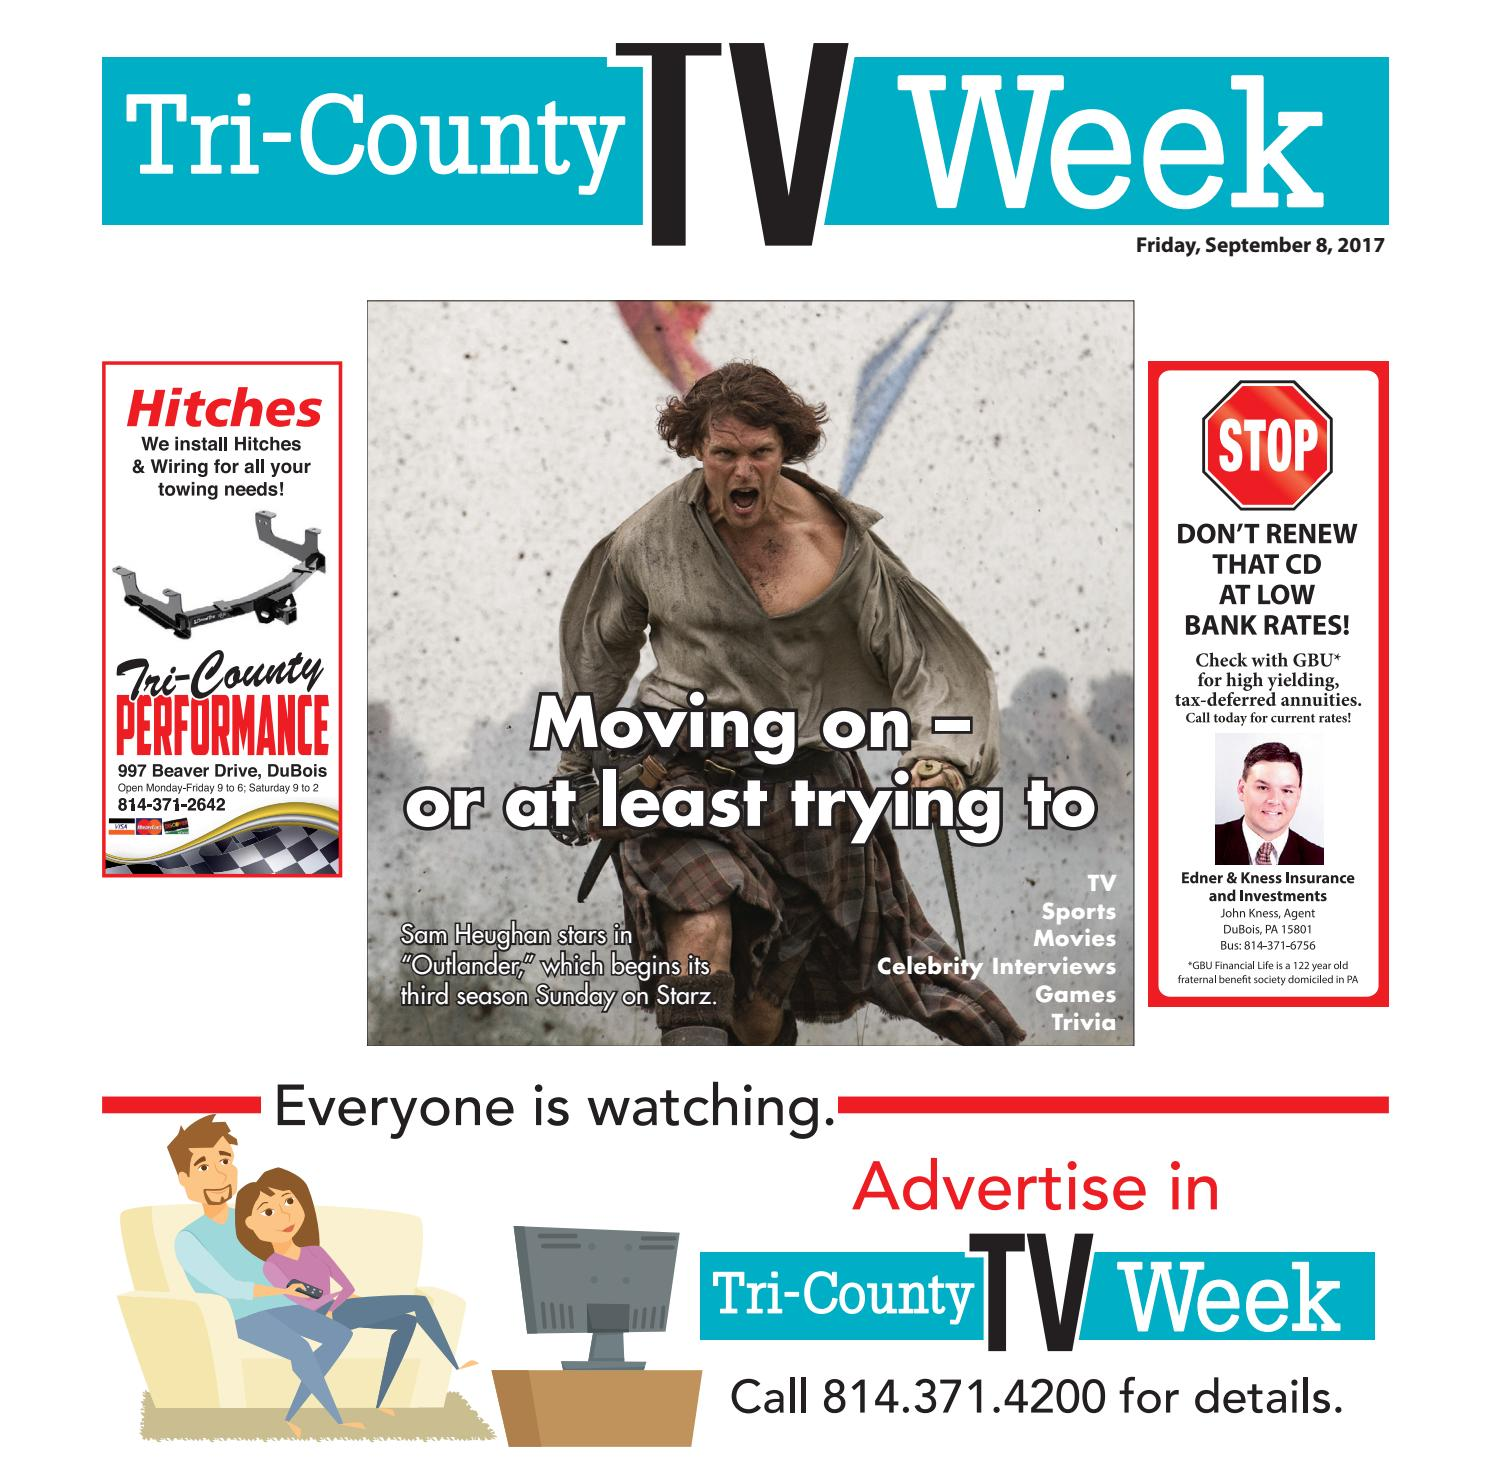 7e90f064c25 TV Week 09/08/2017 by Tri-County TV Week - issuu